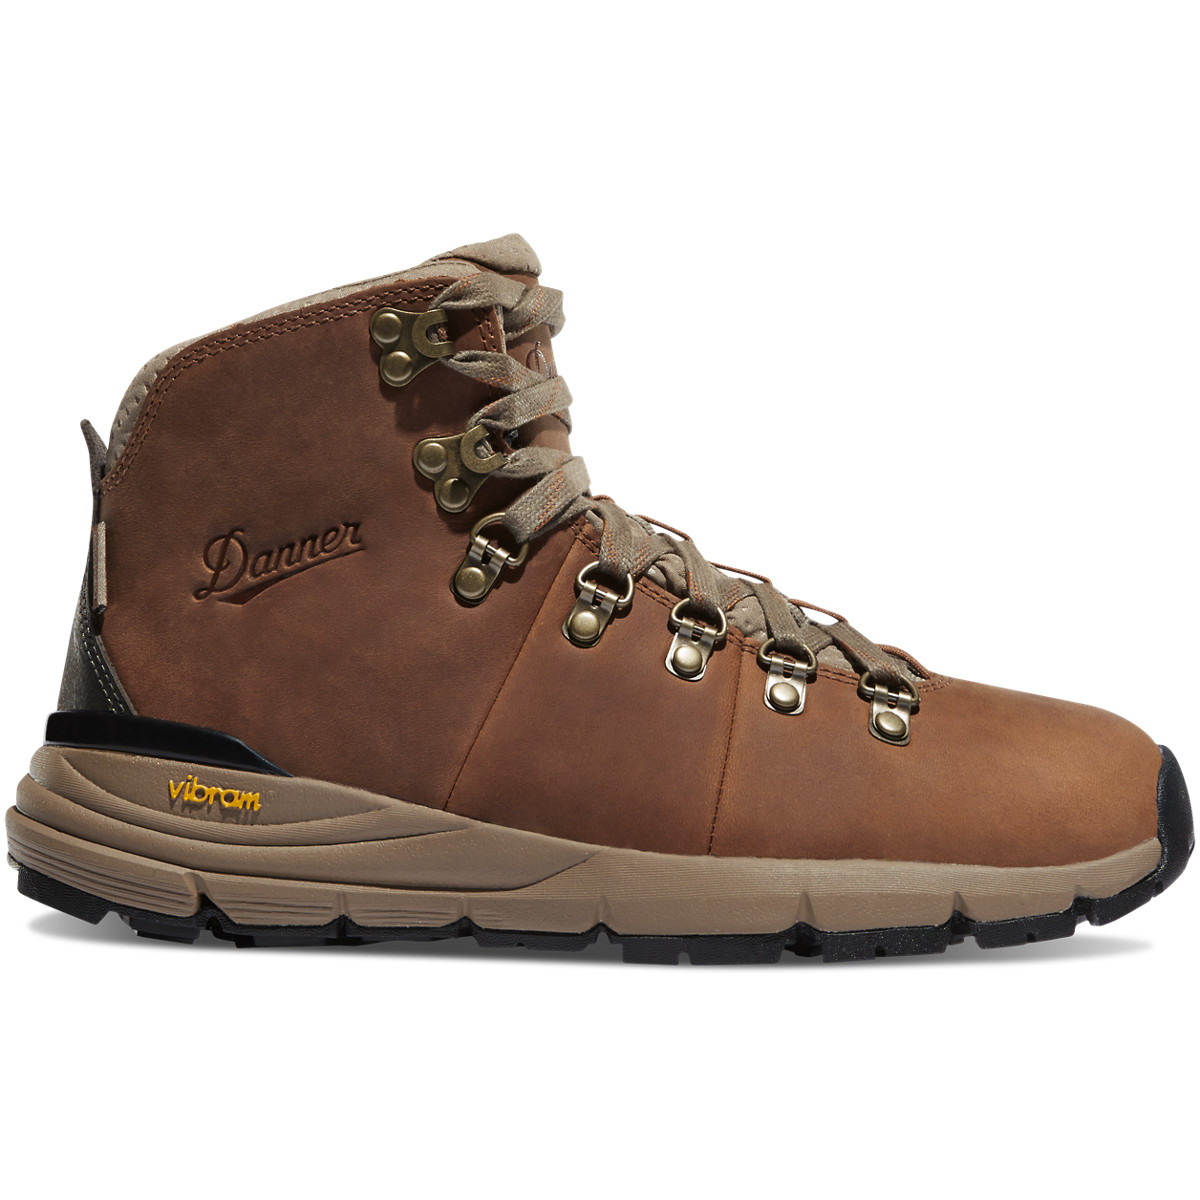 cec03428e Danner - Women's Mountain 600 4.5